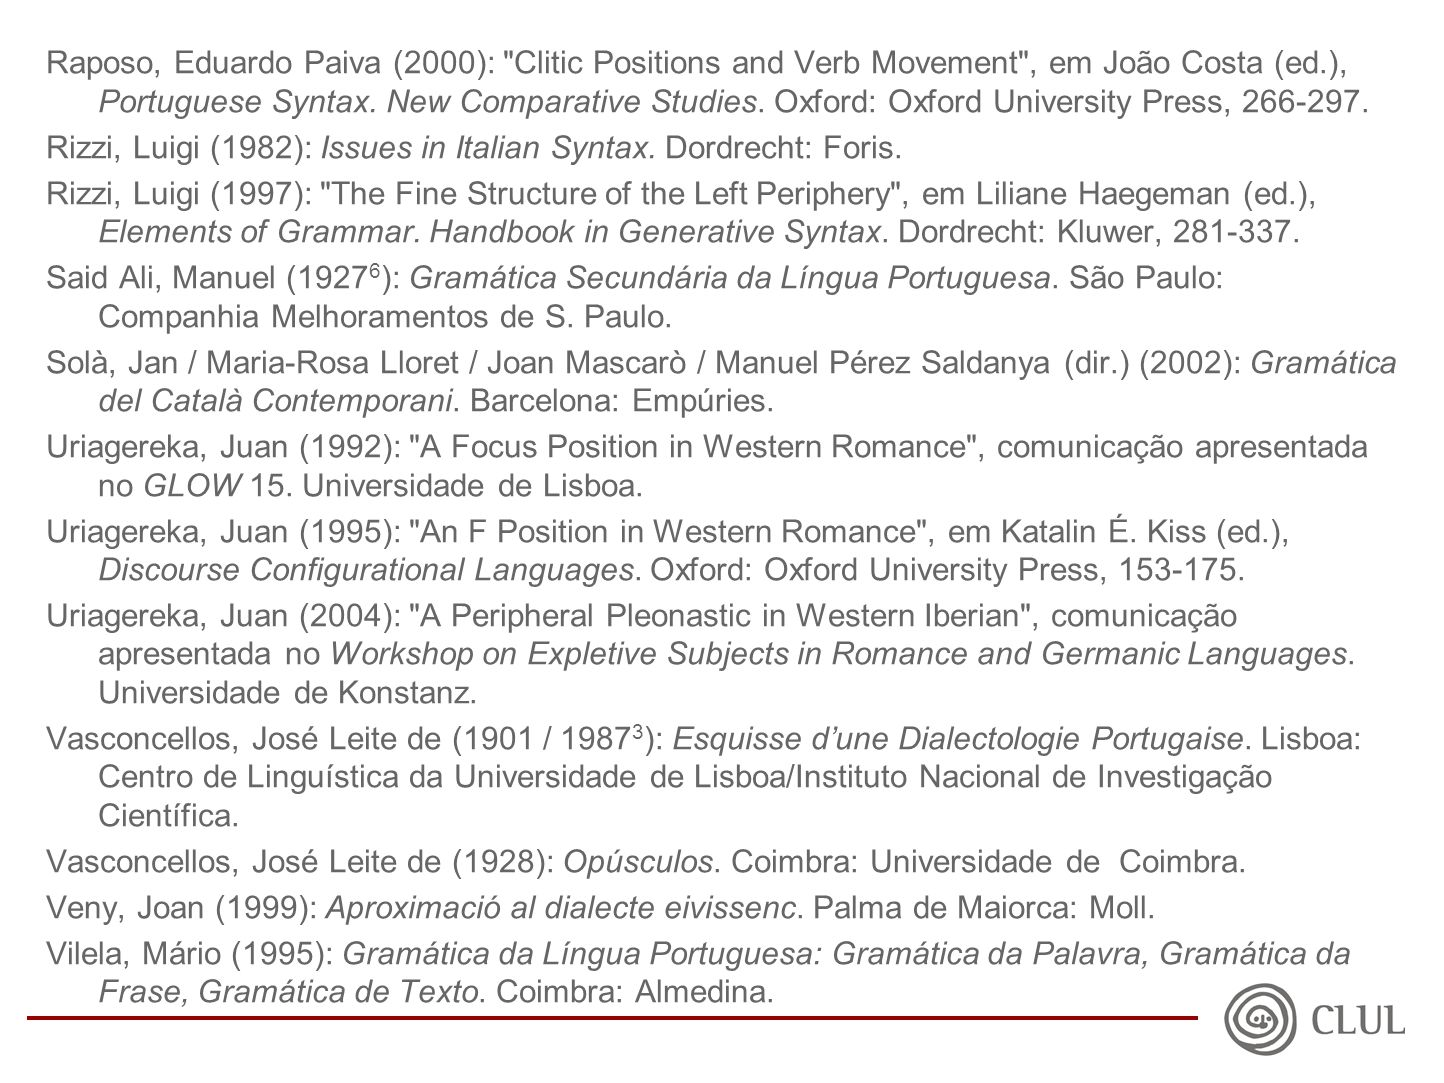 Raposo, Eduardo Paiva (2000): Clitic Positions and Verb Movement , em João Costa (ed.), Portuguese Syntax.